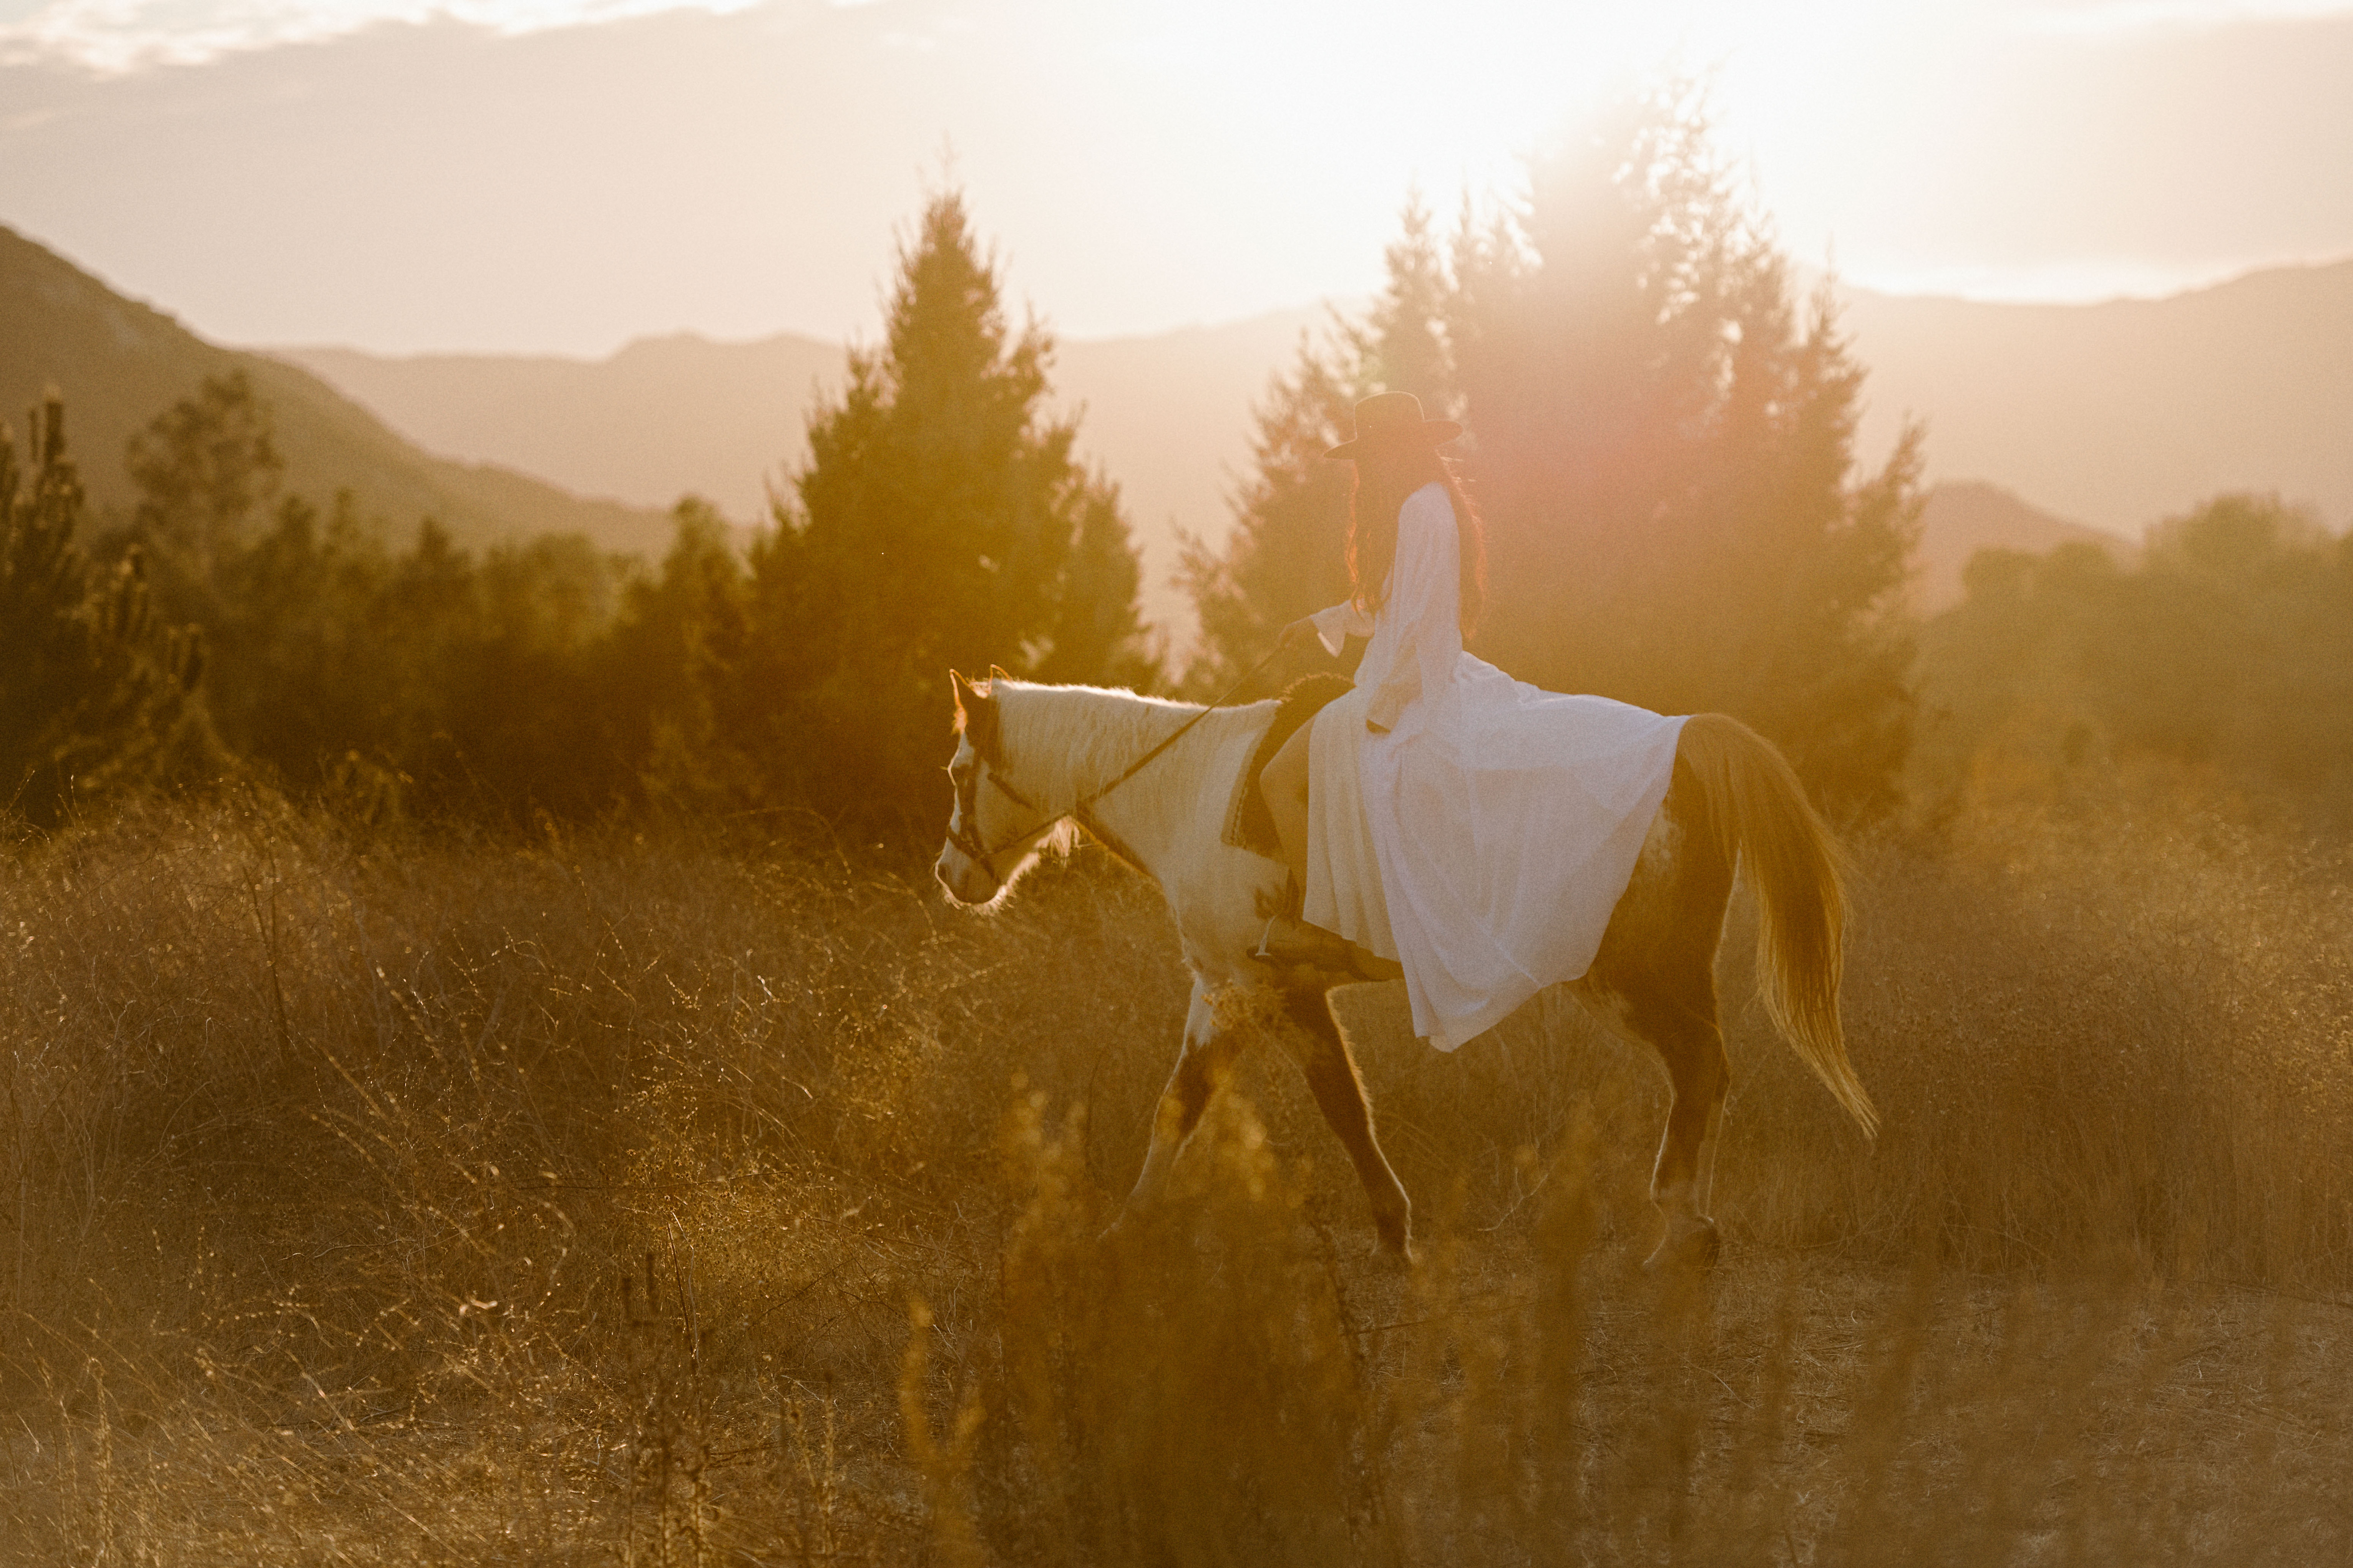 Connecting with the problematic horse